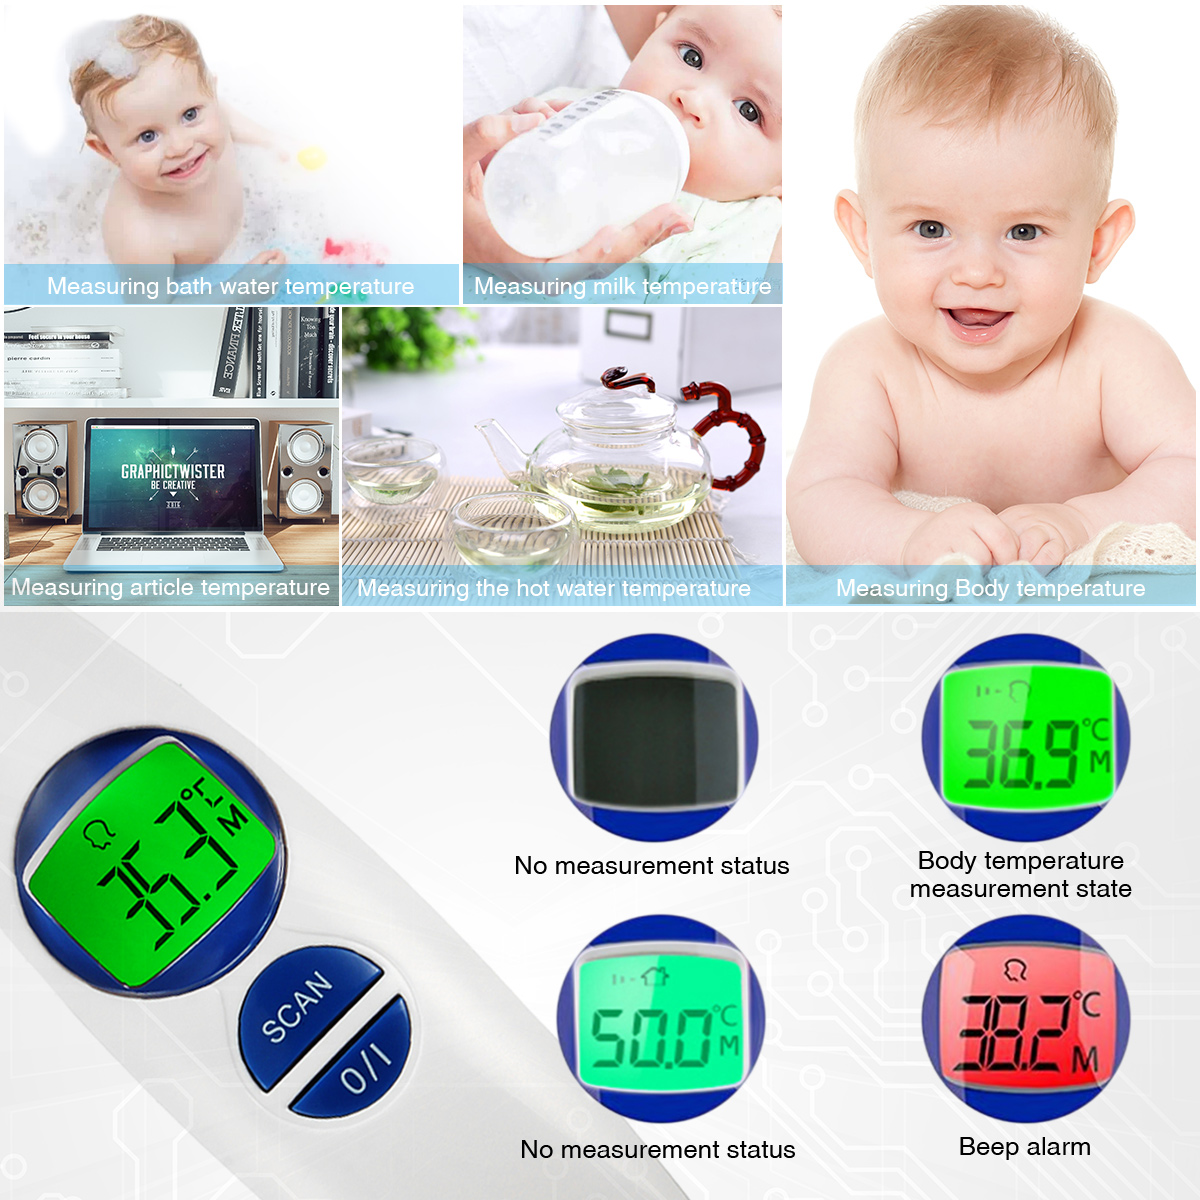 Loskii FR-800 Digital Infrared Thermometer Non-contact Forehead Body Surface Object Temperature Measurement Safe Baby Termometro Alarm Function